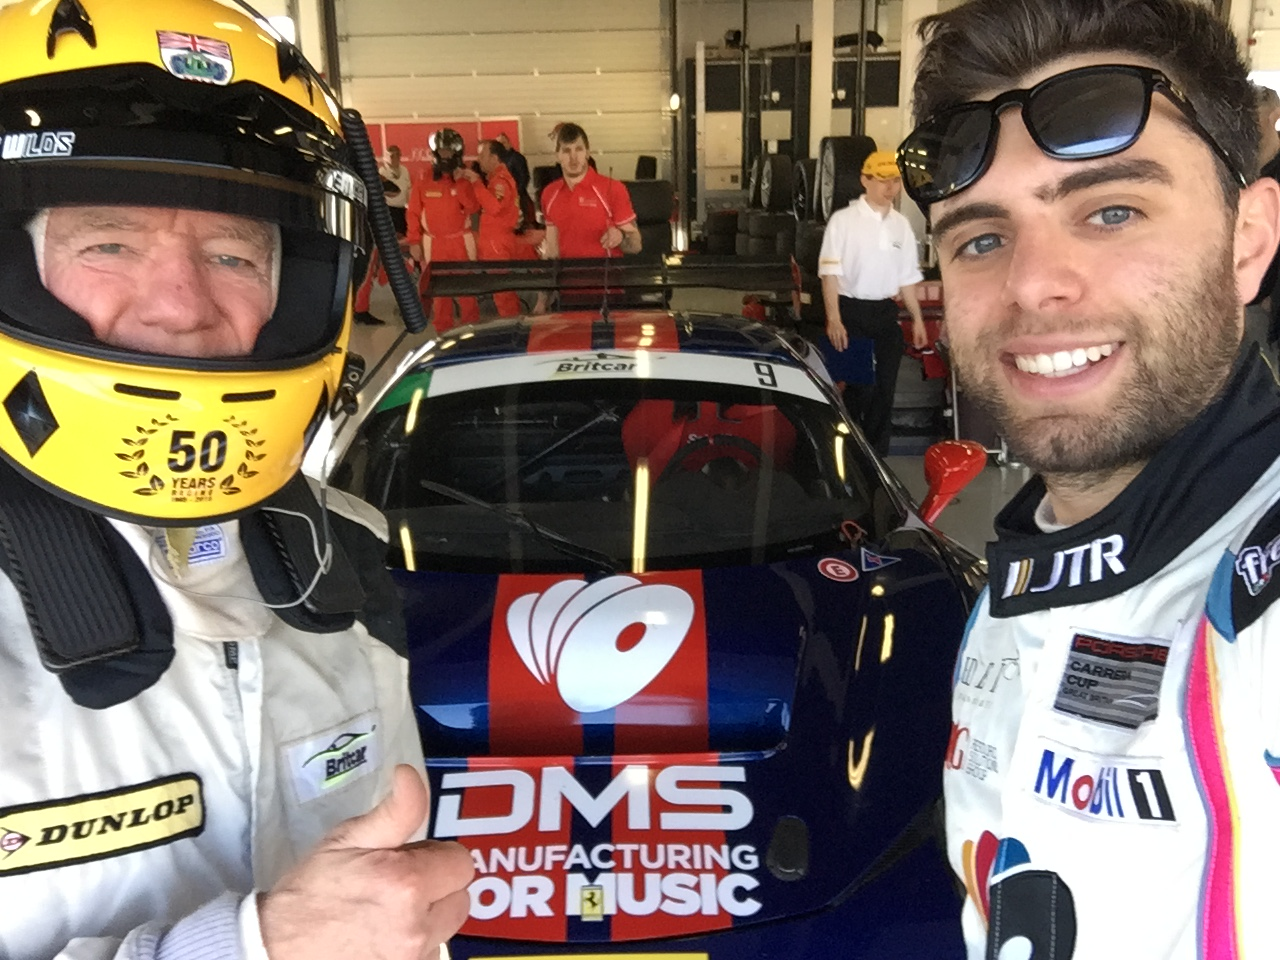 Mike, 71, and Dino, 24, enjoy a selfie before the races